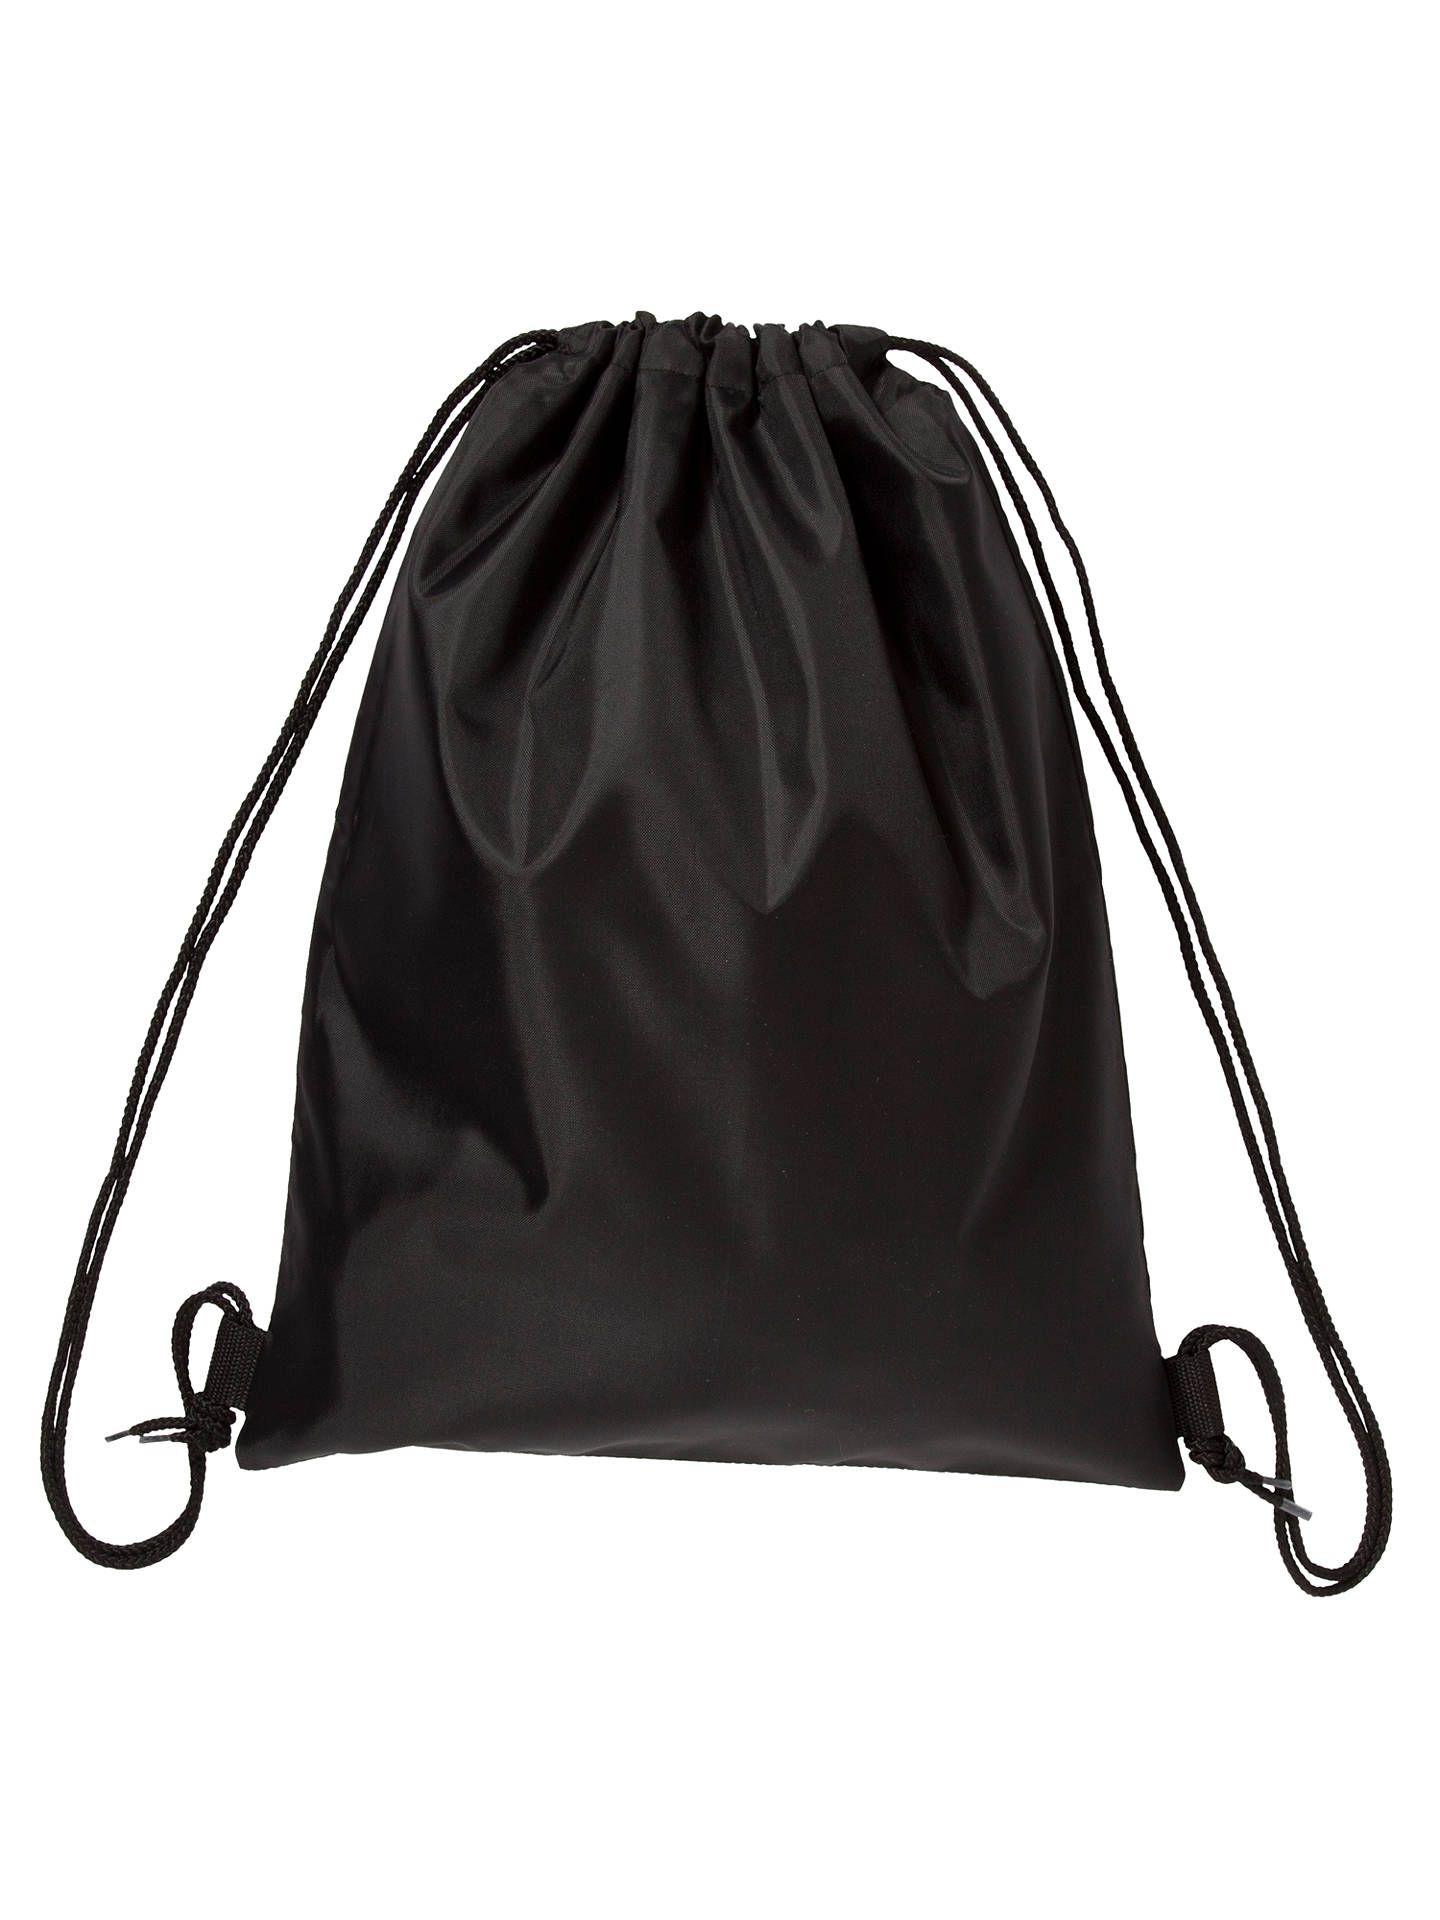 BuyJohn Lewis & Partners School Gym Bag, Black Online at johnlewis.com